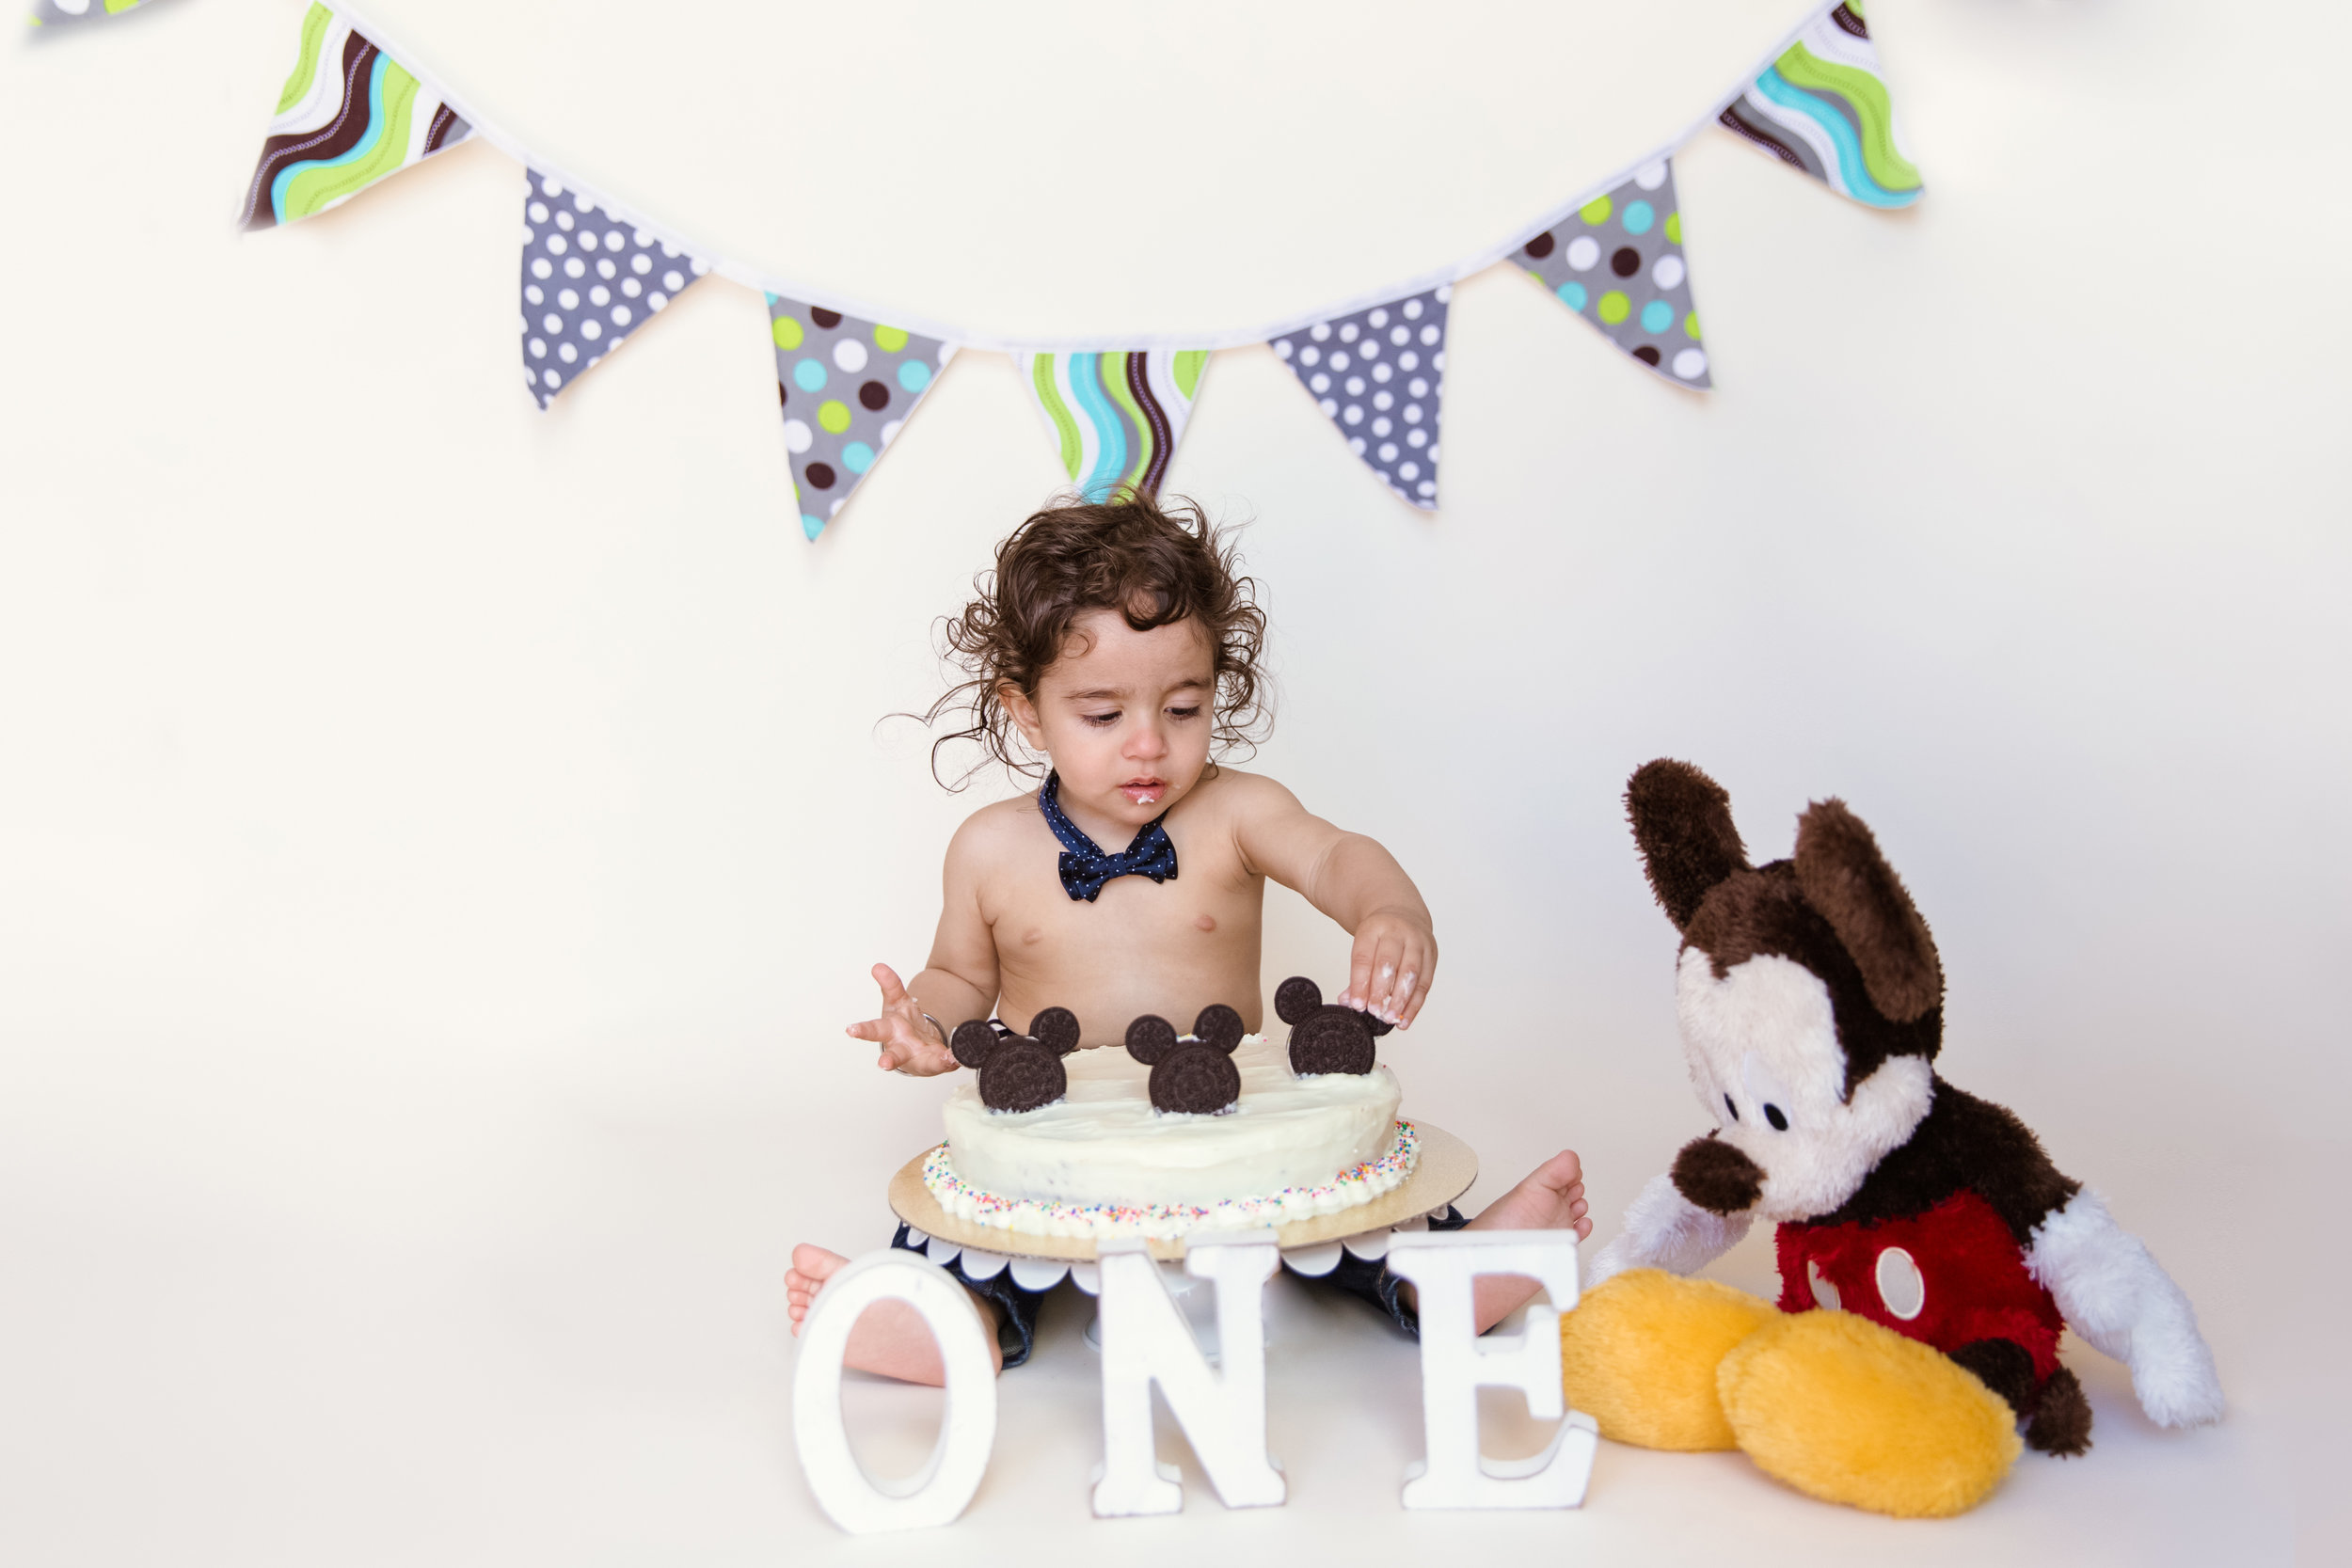 Mickey Mouse Inspired Cakesmash Photoshoot. Birthday Boy is about to taste his first bite of his birthday cake. Calgary Cakesmash Photographer. Milashka Photography